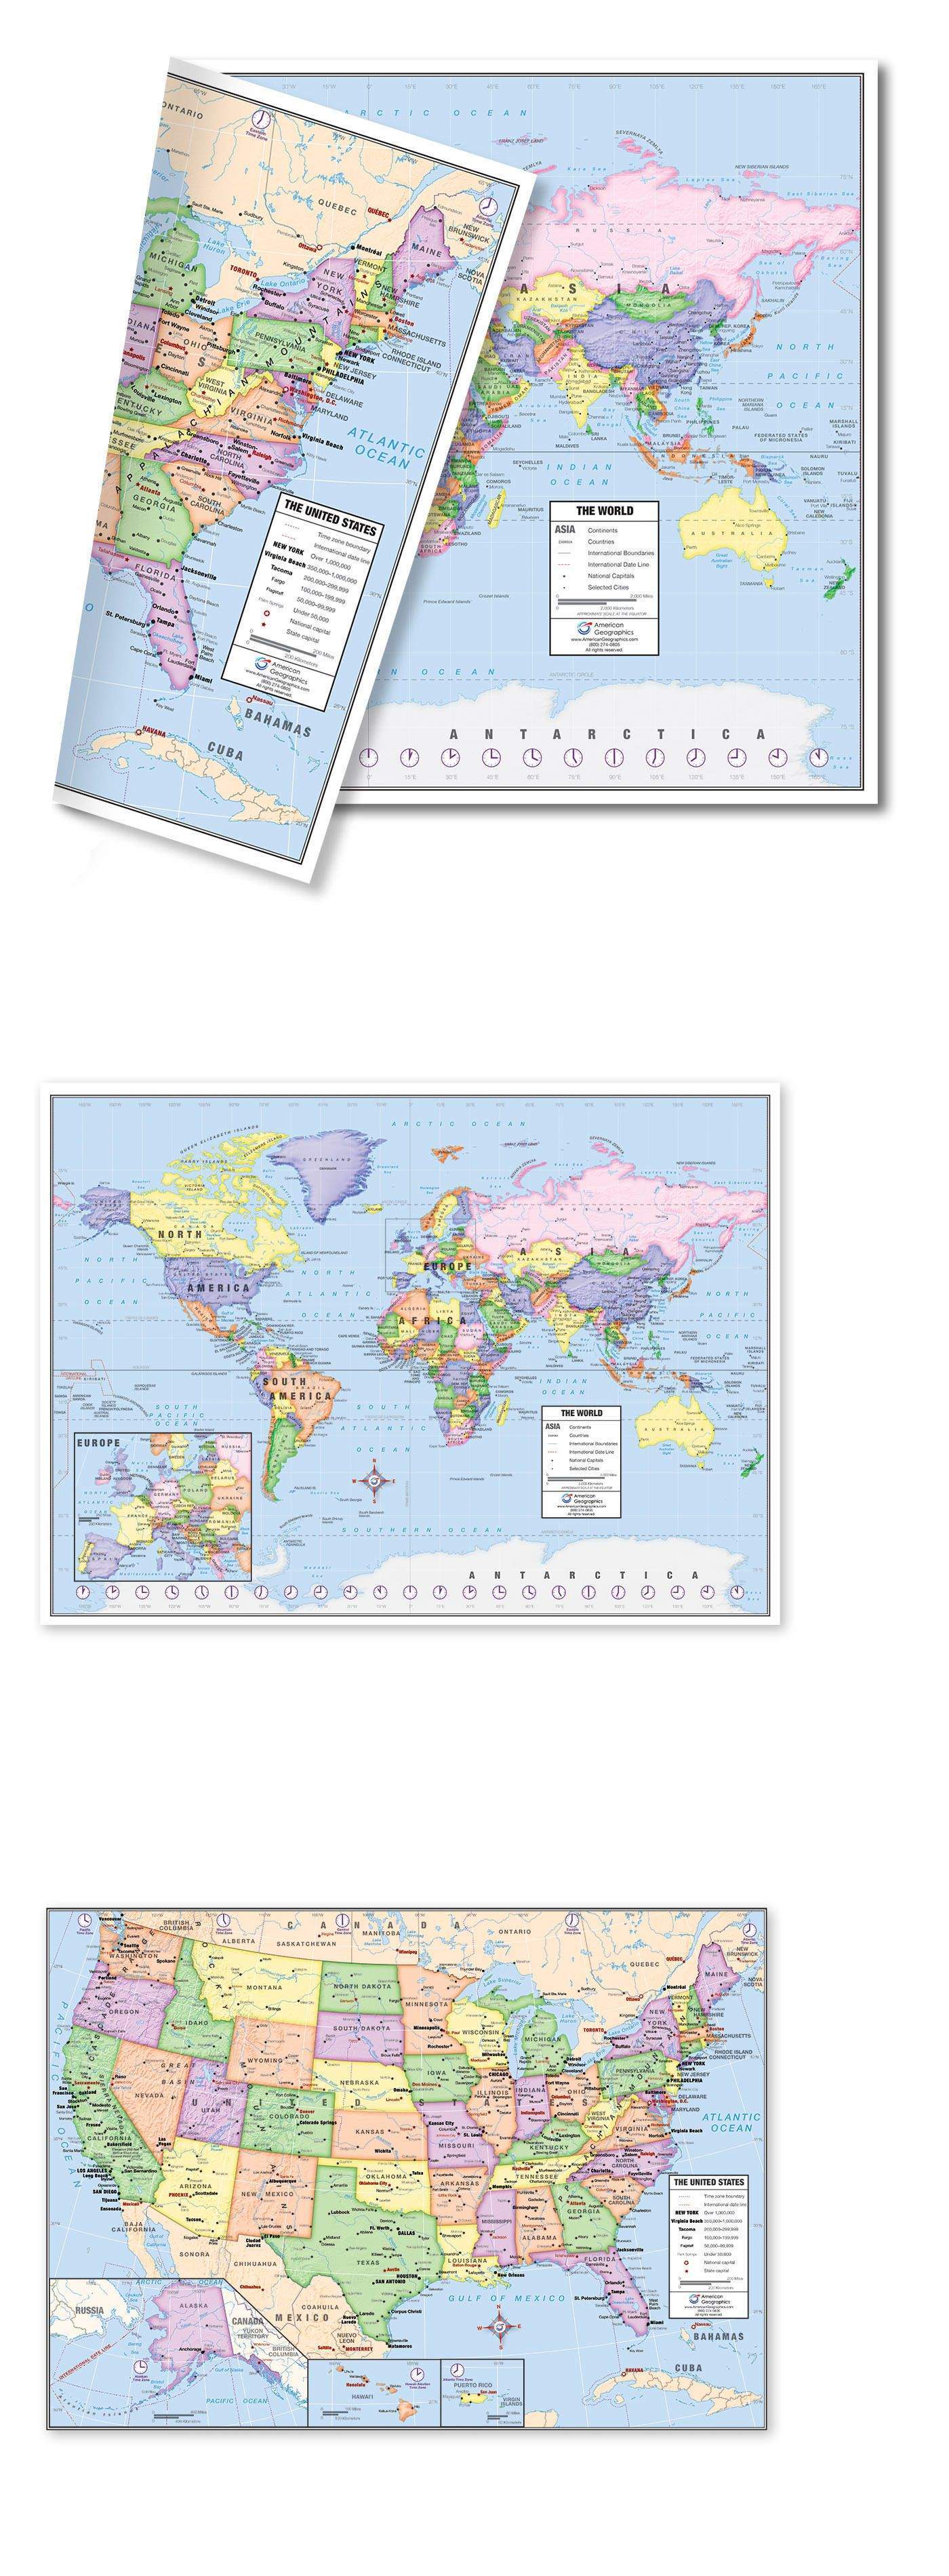 Globes and maps 102952 us and world desk map 5 map pack 13 x 18 globes and maps 102952 us and world desk map 5 map pack gumiabroncs Choice Image